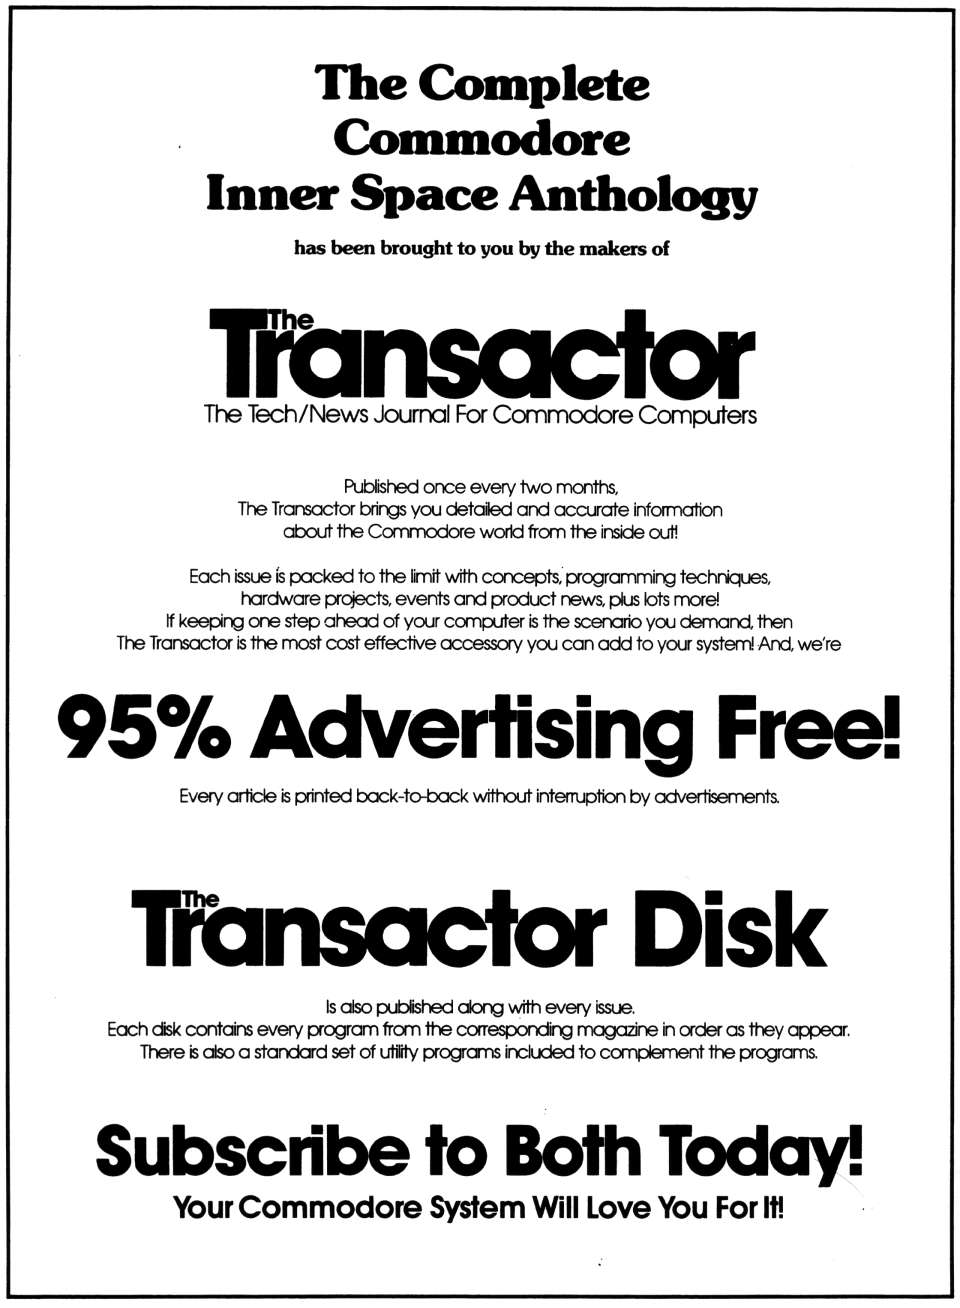 [960�1308 Advertisement for The Transactor and The Transactor Disk]